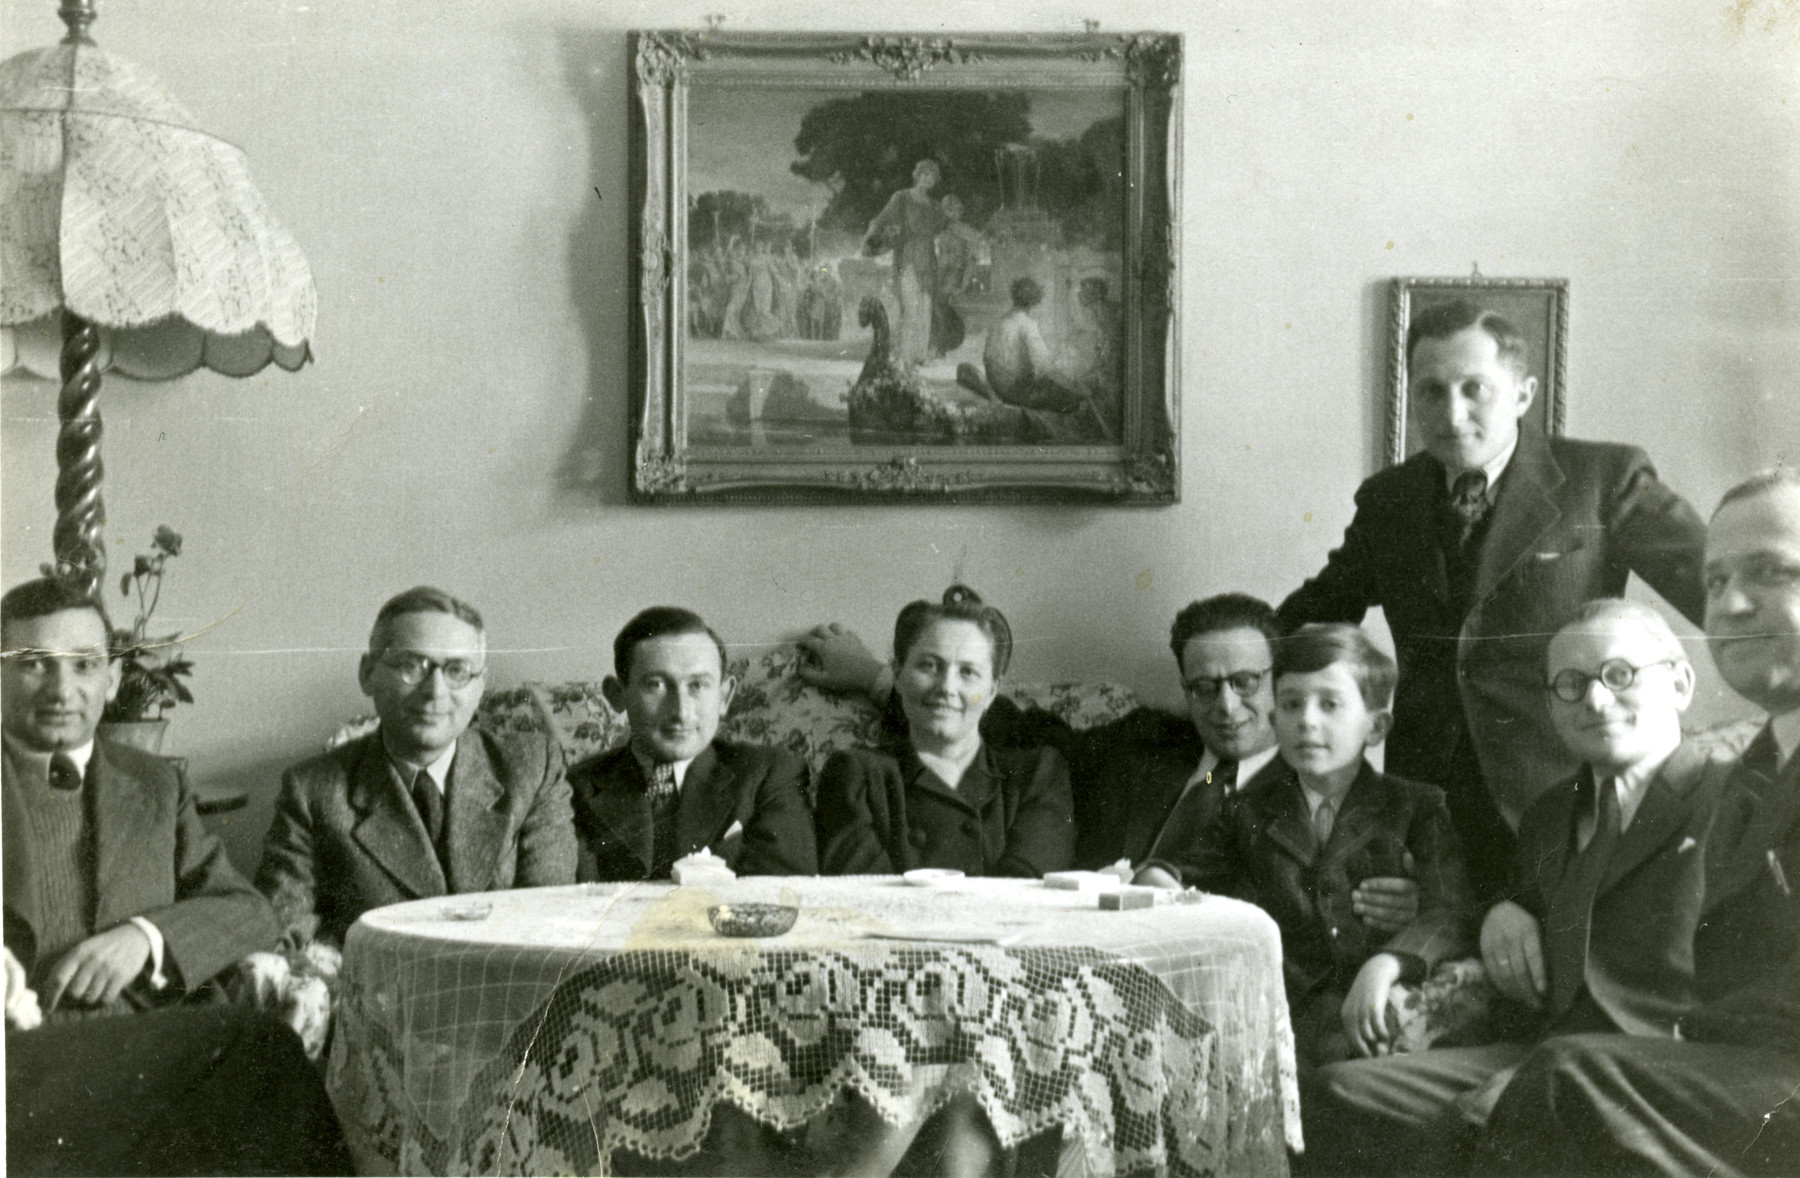 Elie Breuer (the young child) sits with his family in Papa.  His father is at the very right edge of the photo and his mother is in the middle.